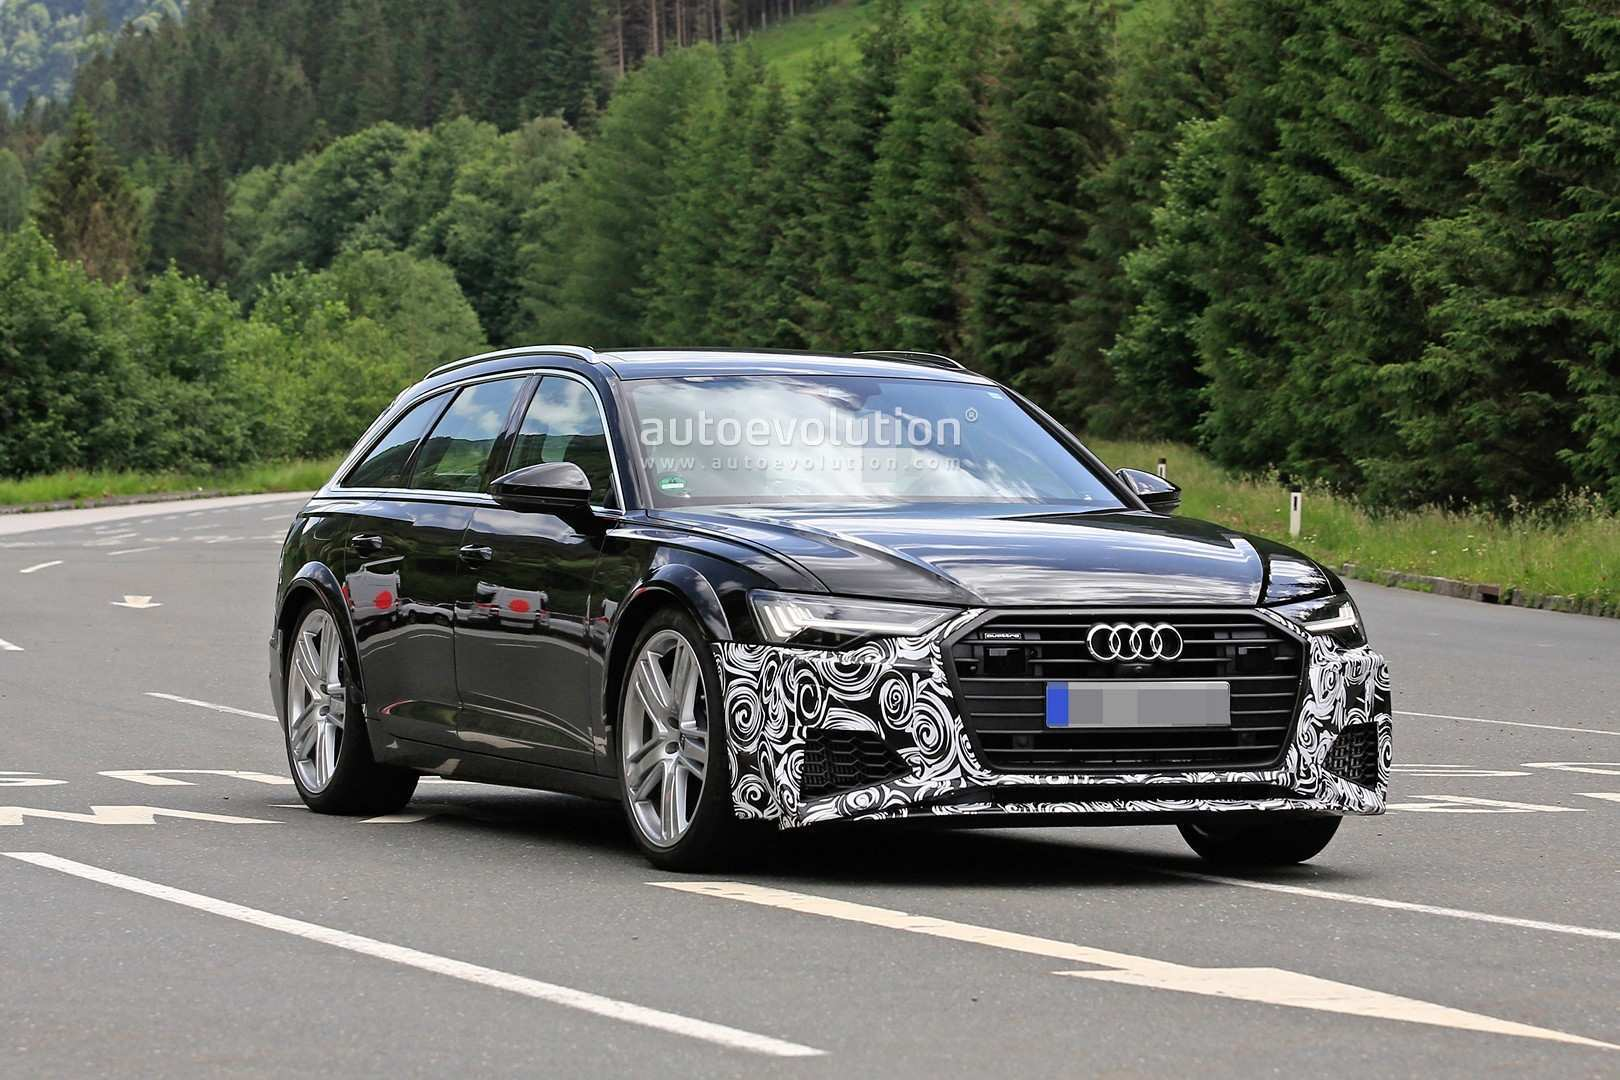 38 Best Audi News 2020 Price And Review